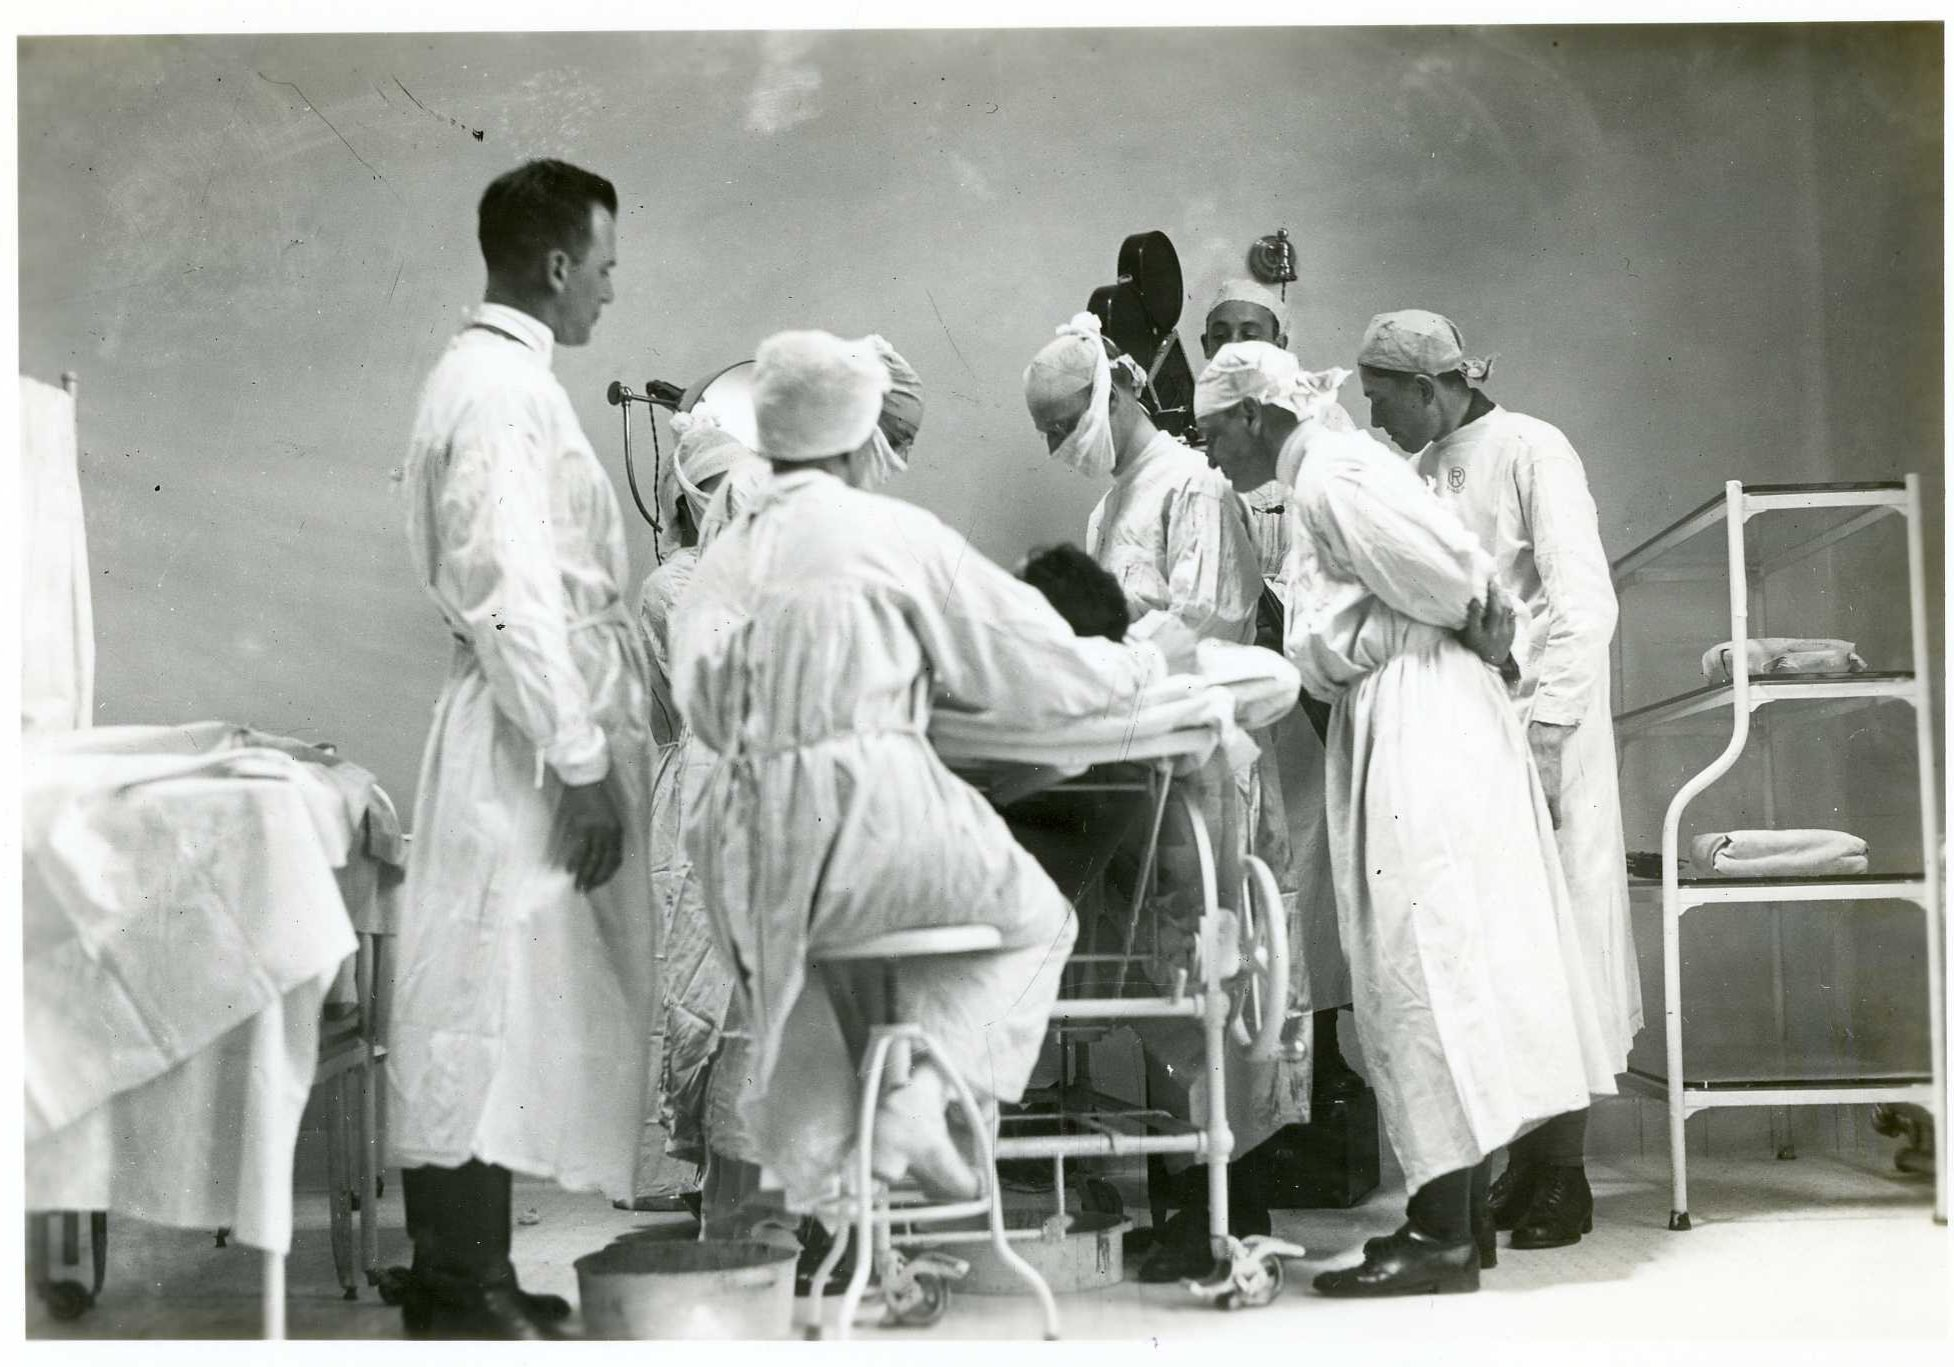 old image of doctors and nurses gathered around operating table.